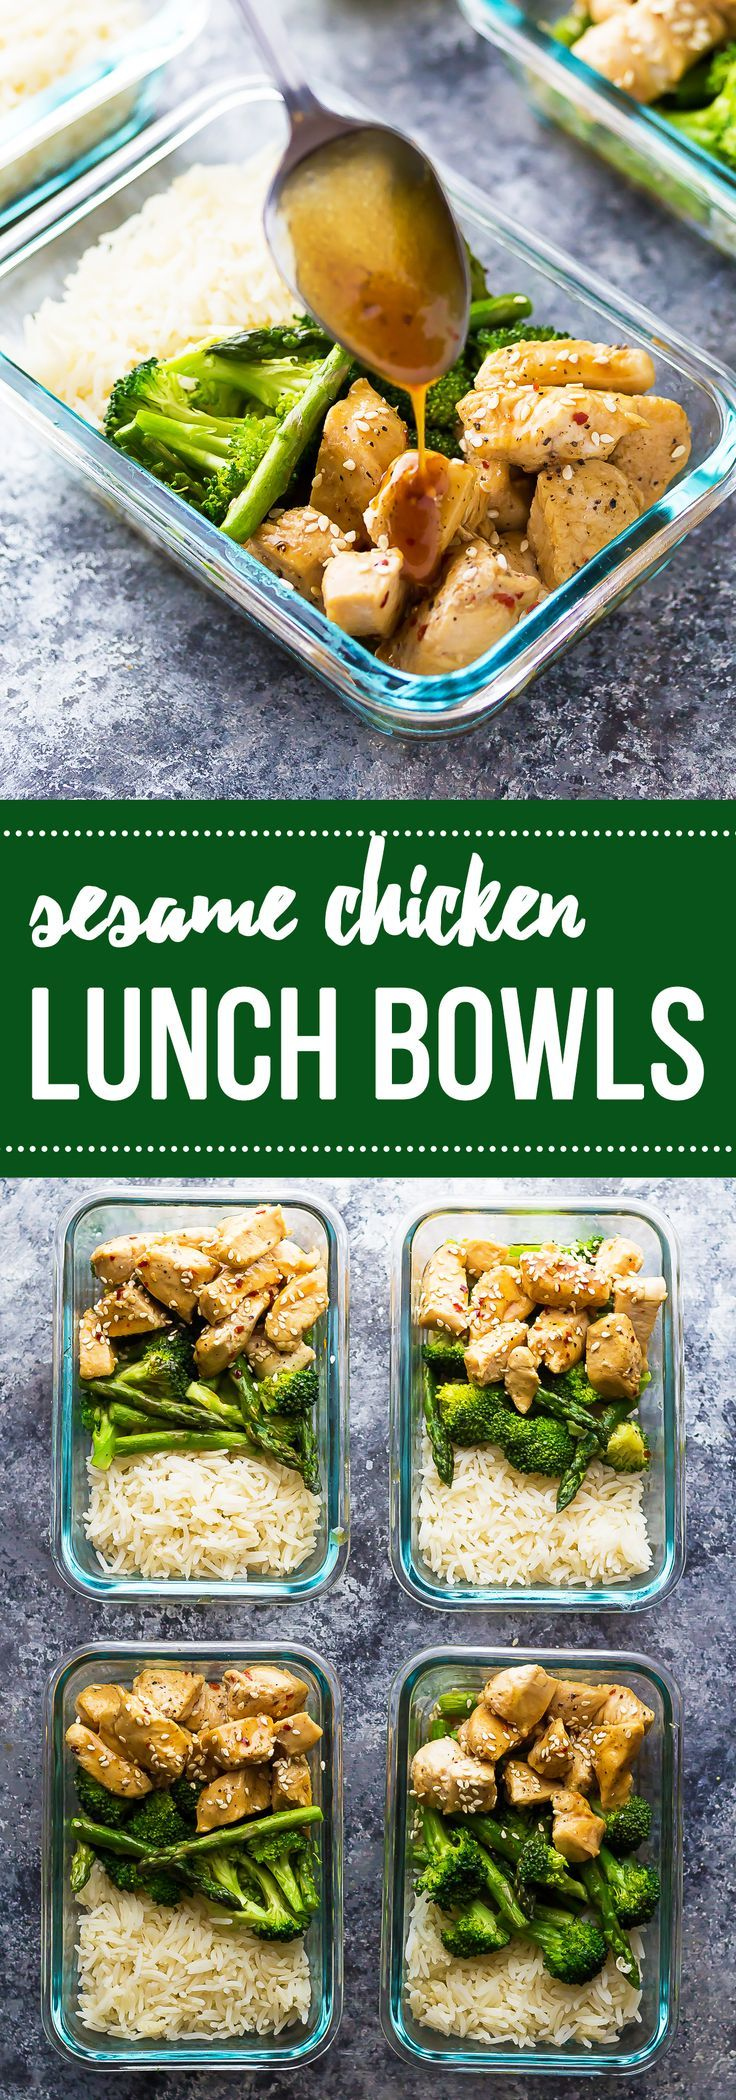 Best 25 healthy lunches ideas on pinterest healthy lunch ideas honey sesame chicken lunch bowls forumfinder Choice Image